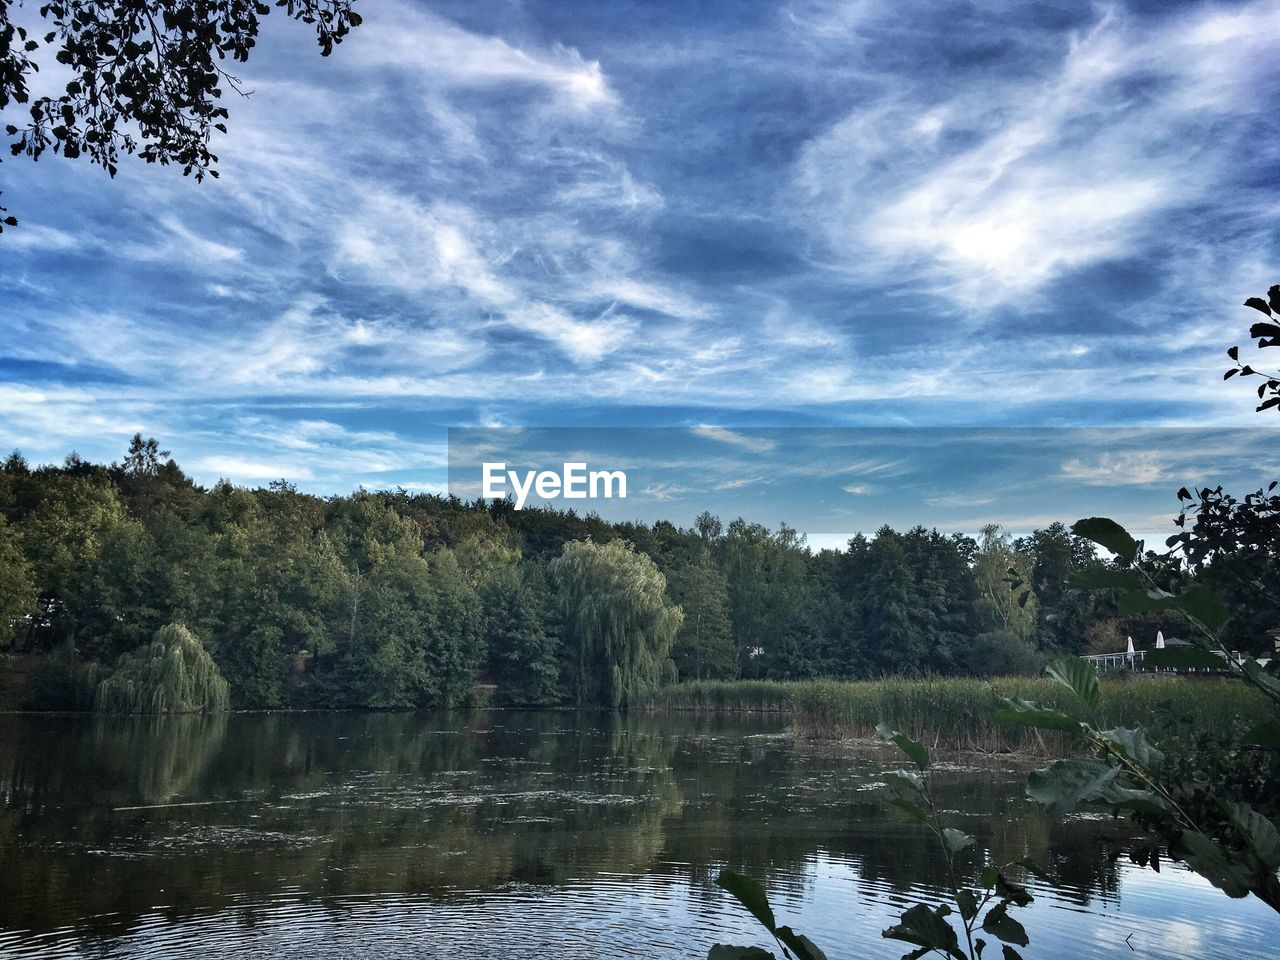 tree, water, plant, sky, cloud - sky, beauty in nature, scenics - nature, lake, tranquility, nature, reflection, tranquil scene, day, no people, growth, non-urban scene, forest, outdoors